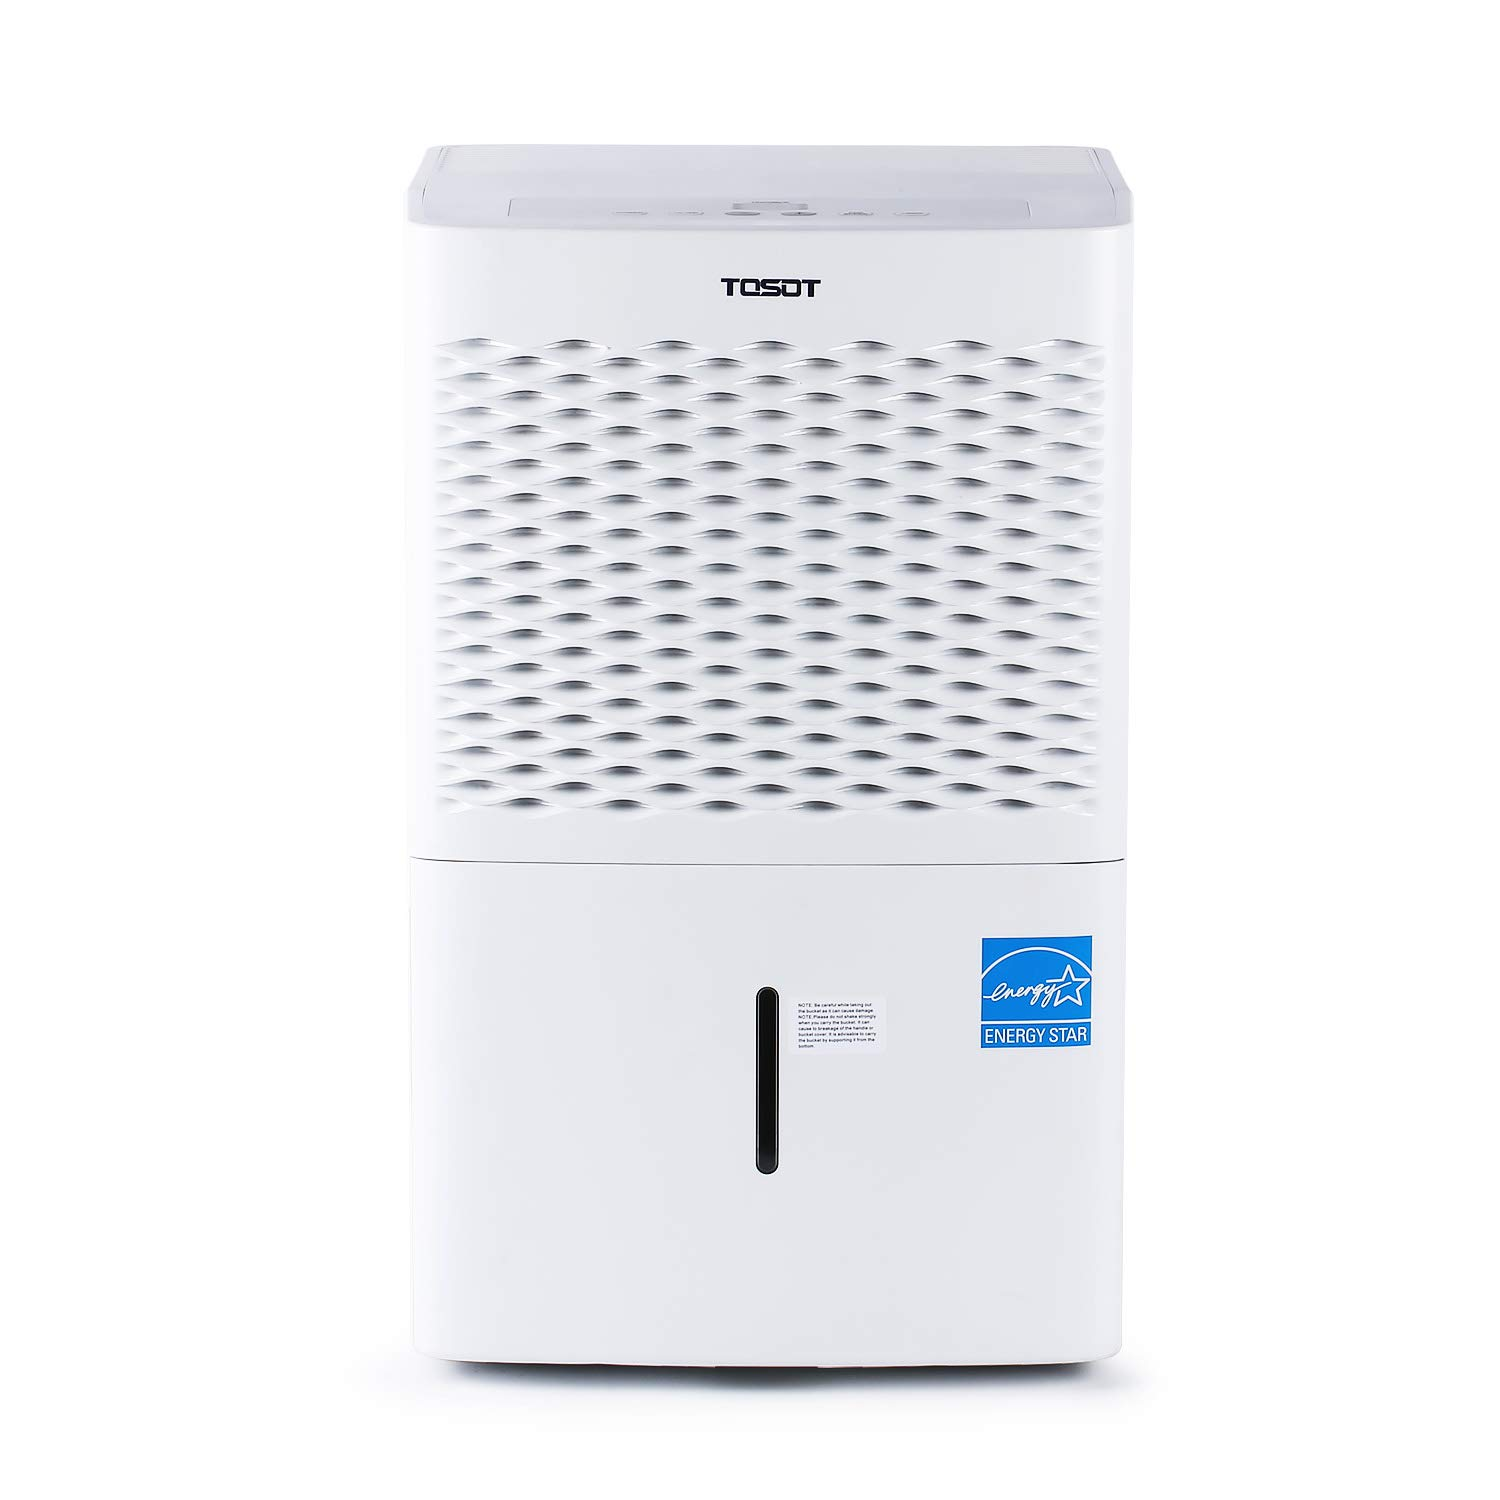 Tosot 30 Pint 1500 Sq. Ft. Energy Star Dehumidifier - for Basements, Large Rooms, and Whole House - Quiet, Portable, and Efficient - Prevents Mold and Mildew